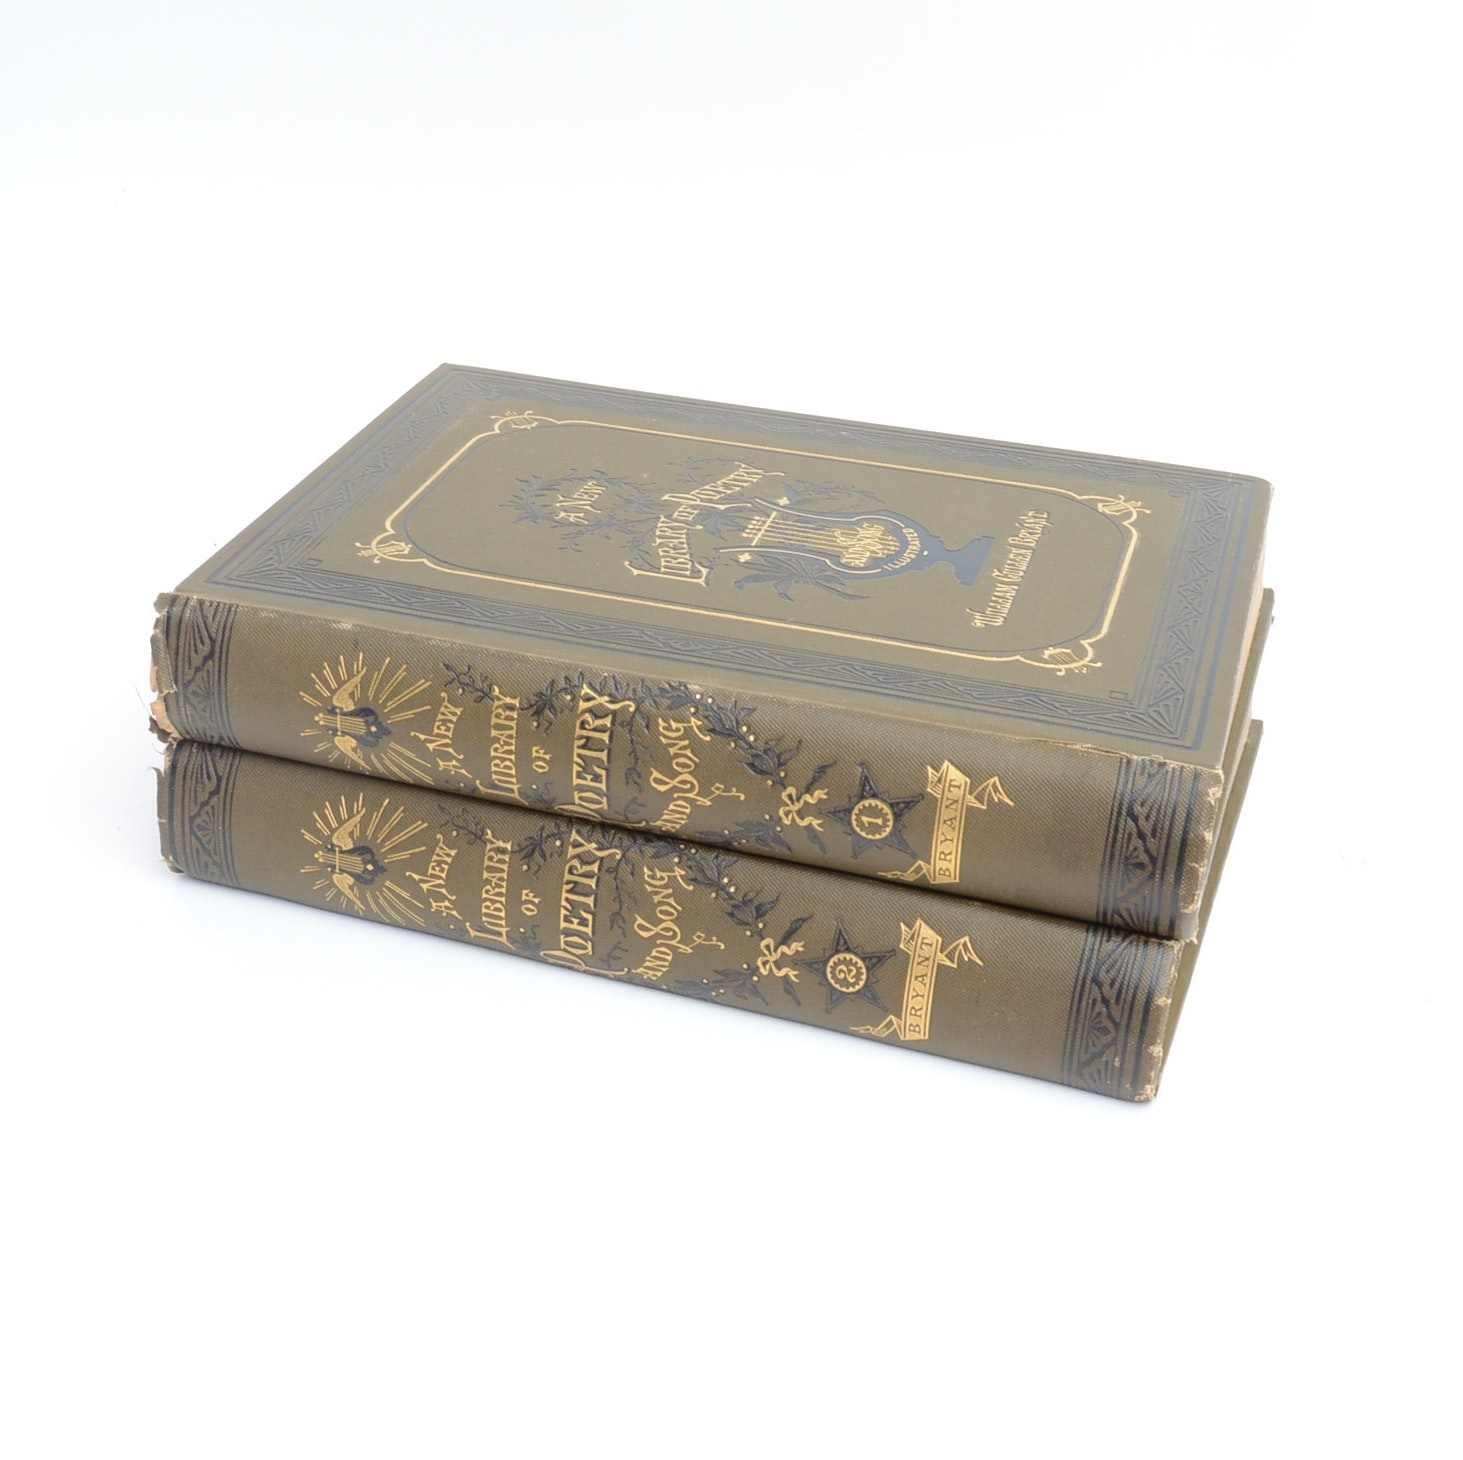 """1883 """"A New Library of Poetry and Music"""" Edited by William C. Bryant, 2 Volumes"""